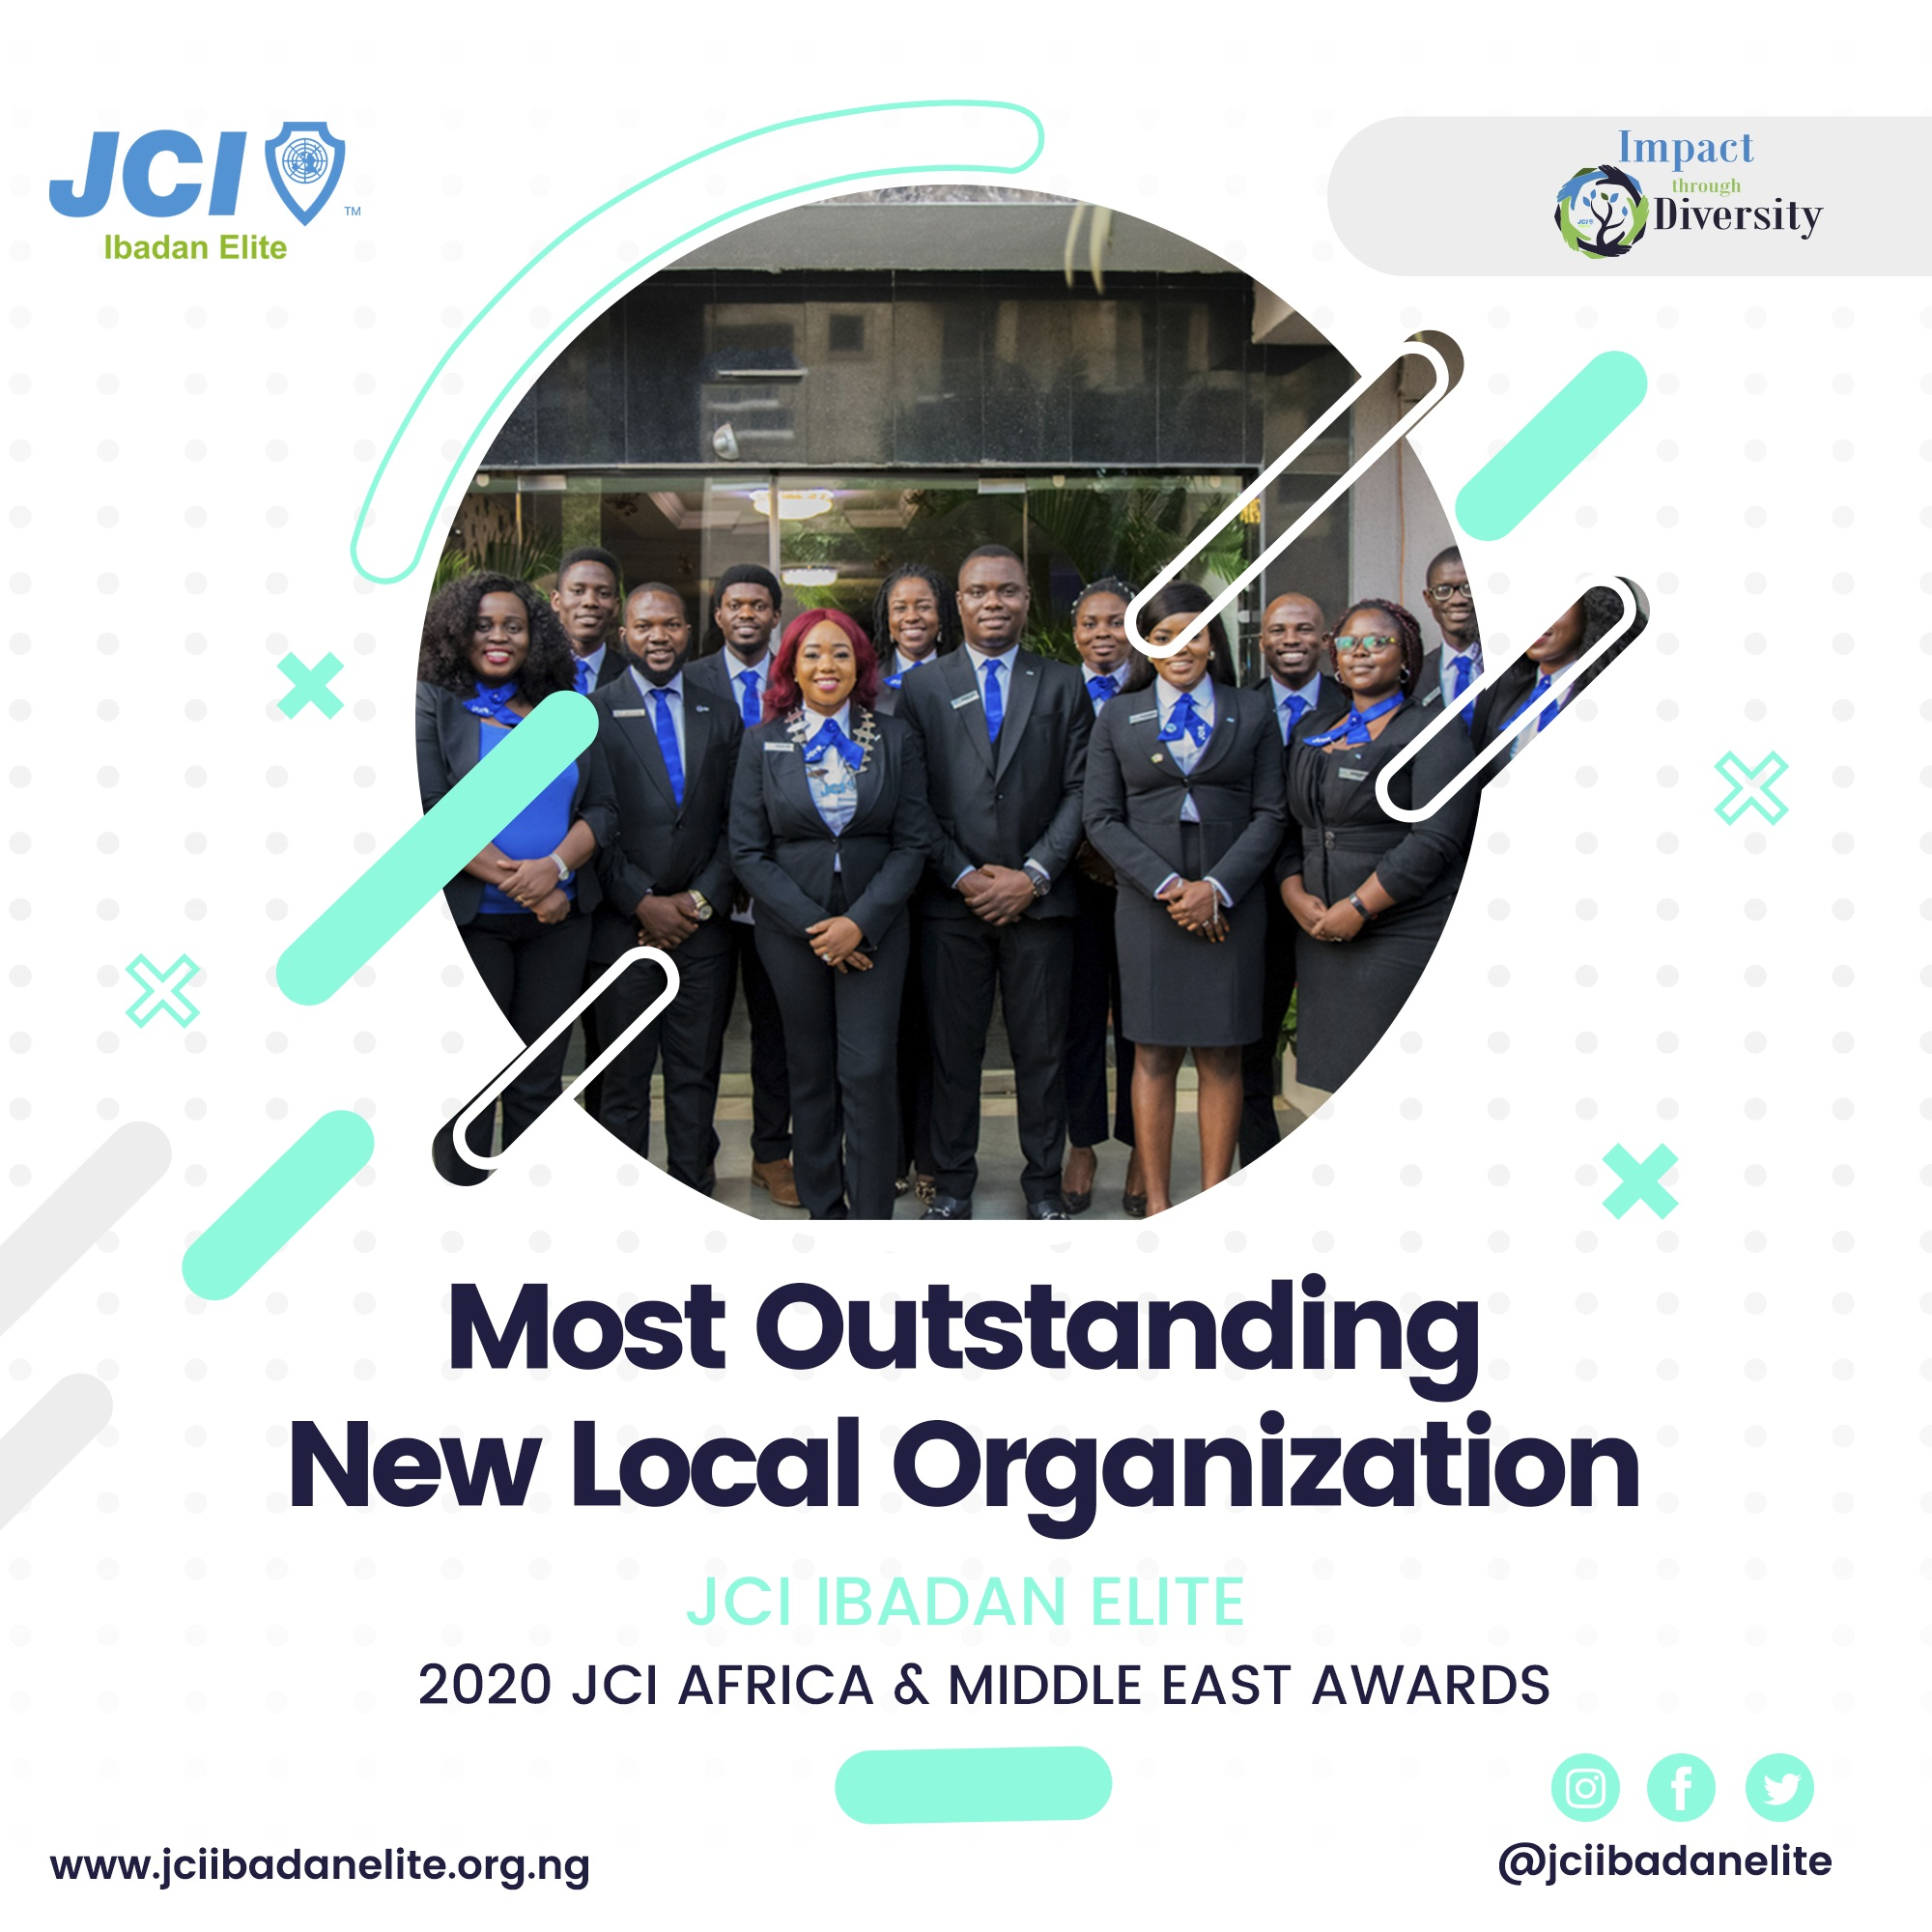 JCI Ibadan Elite Stuns Africa, Bags 2 Awards at Africa and the Middle East Awards